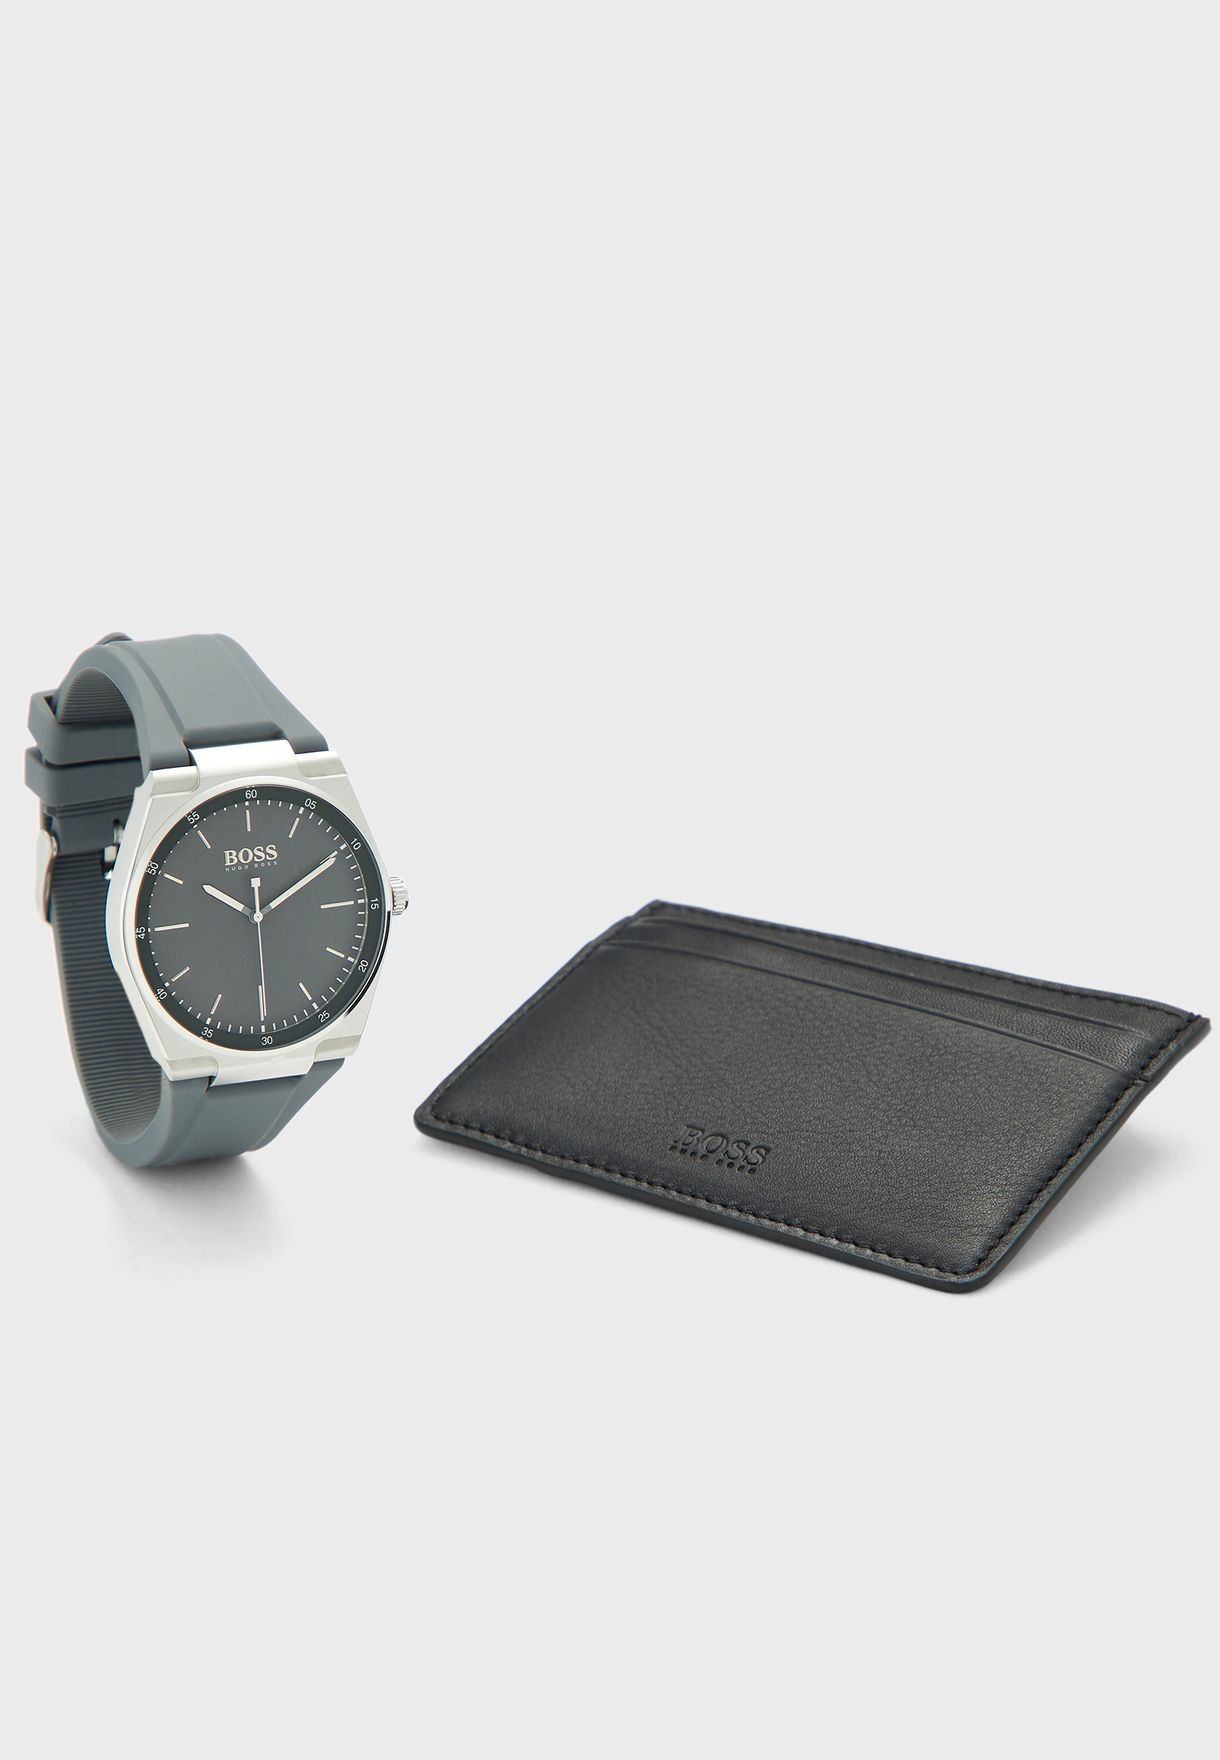 1570077 Classic Jackson Watch & Card Holder Set